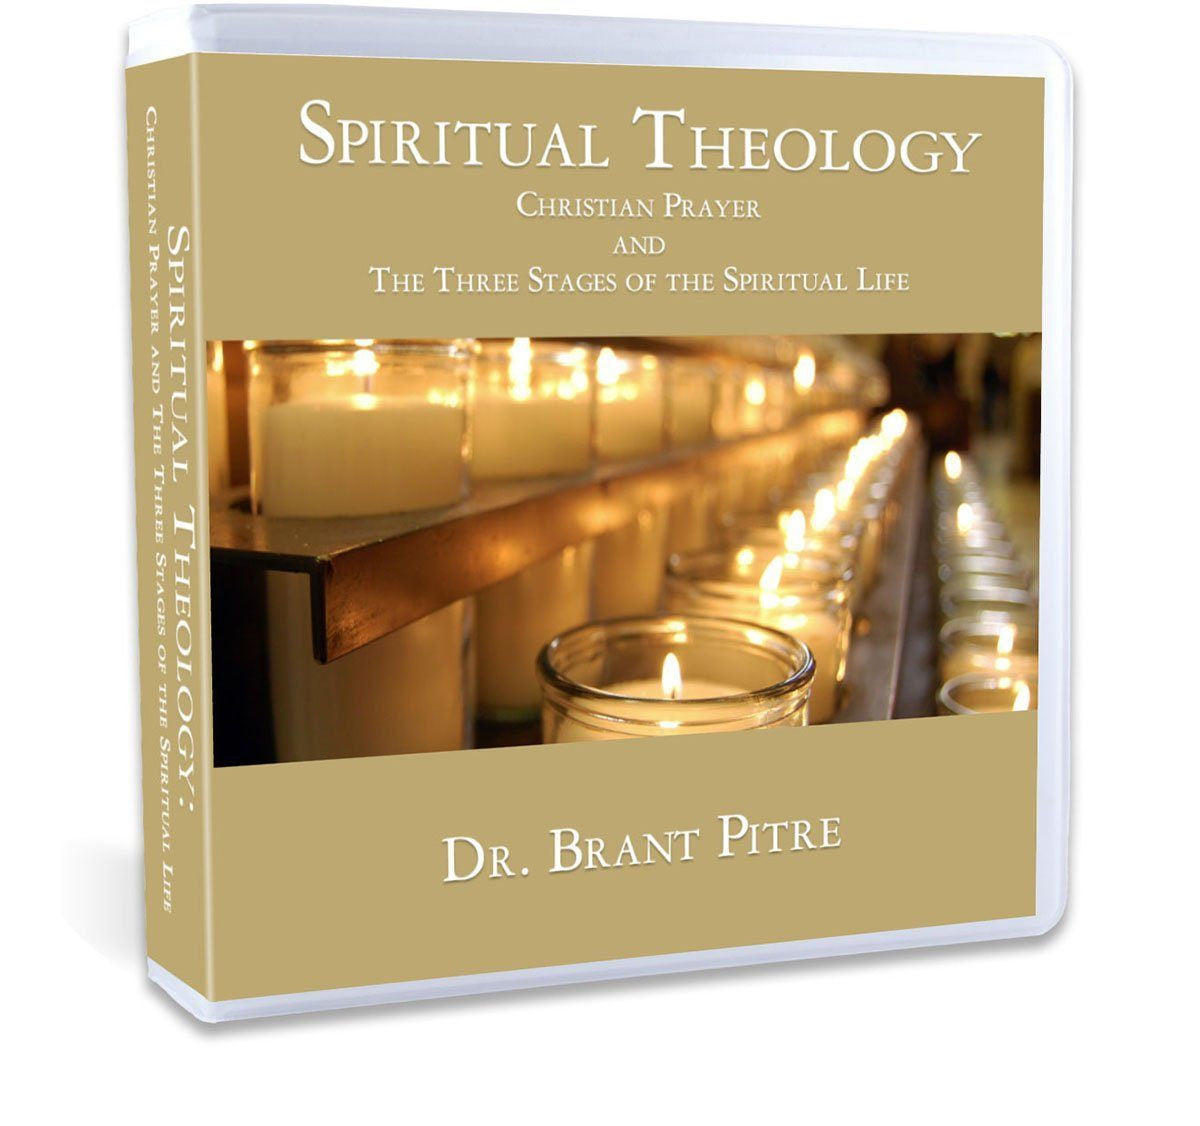 Spiritual Theology and Christian Prayer - Brant Pitre